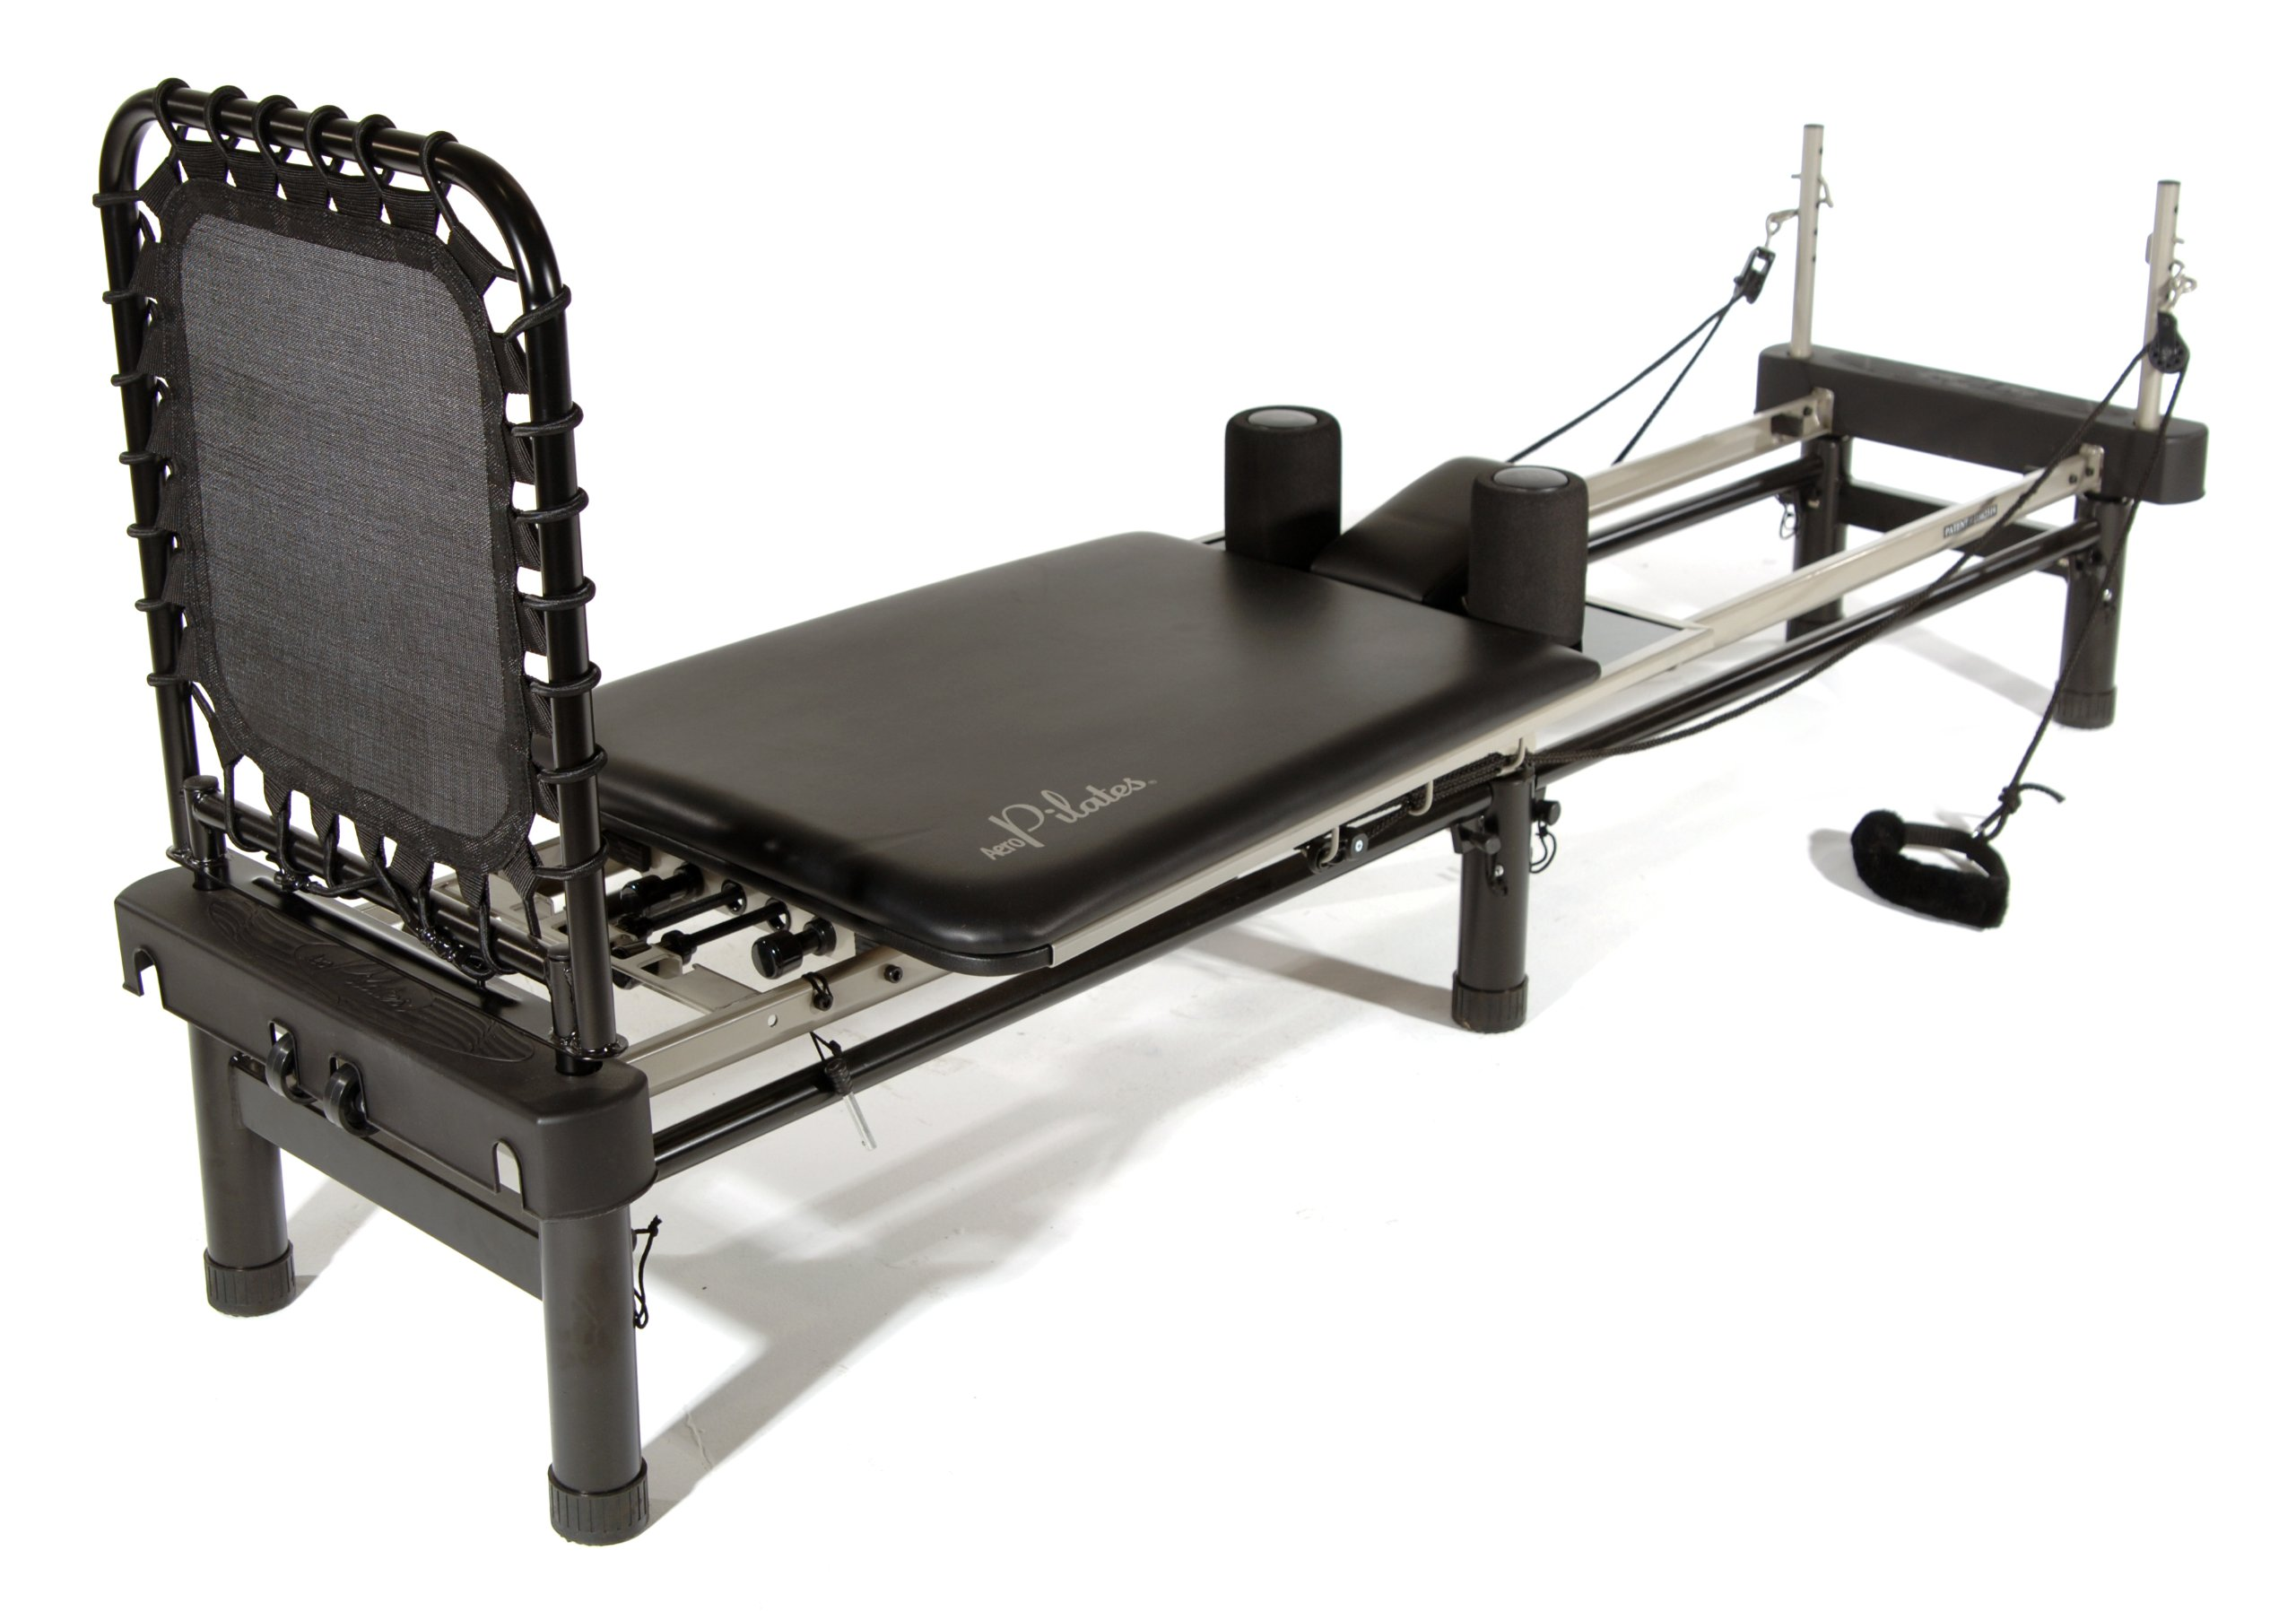 Stamina AeroPilates 700 Premier Reformer with Stand, Cardio Rebounder, Neck Pillow and DVDs by Stamina (Image #2)